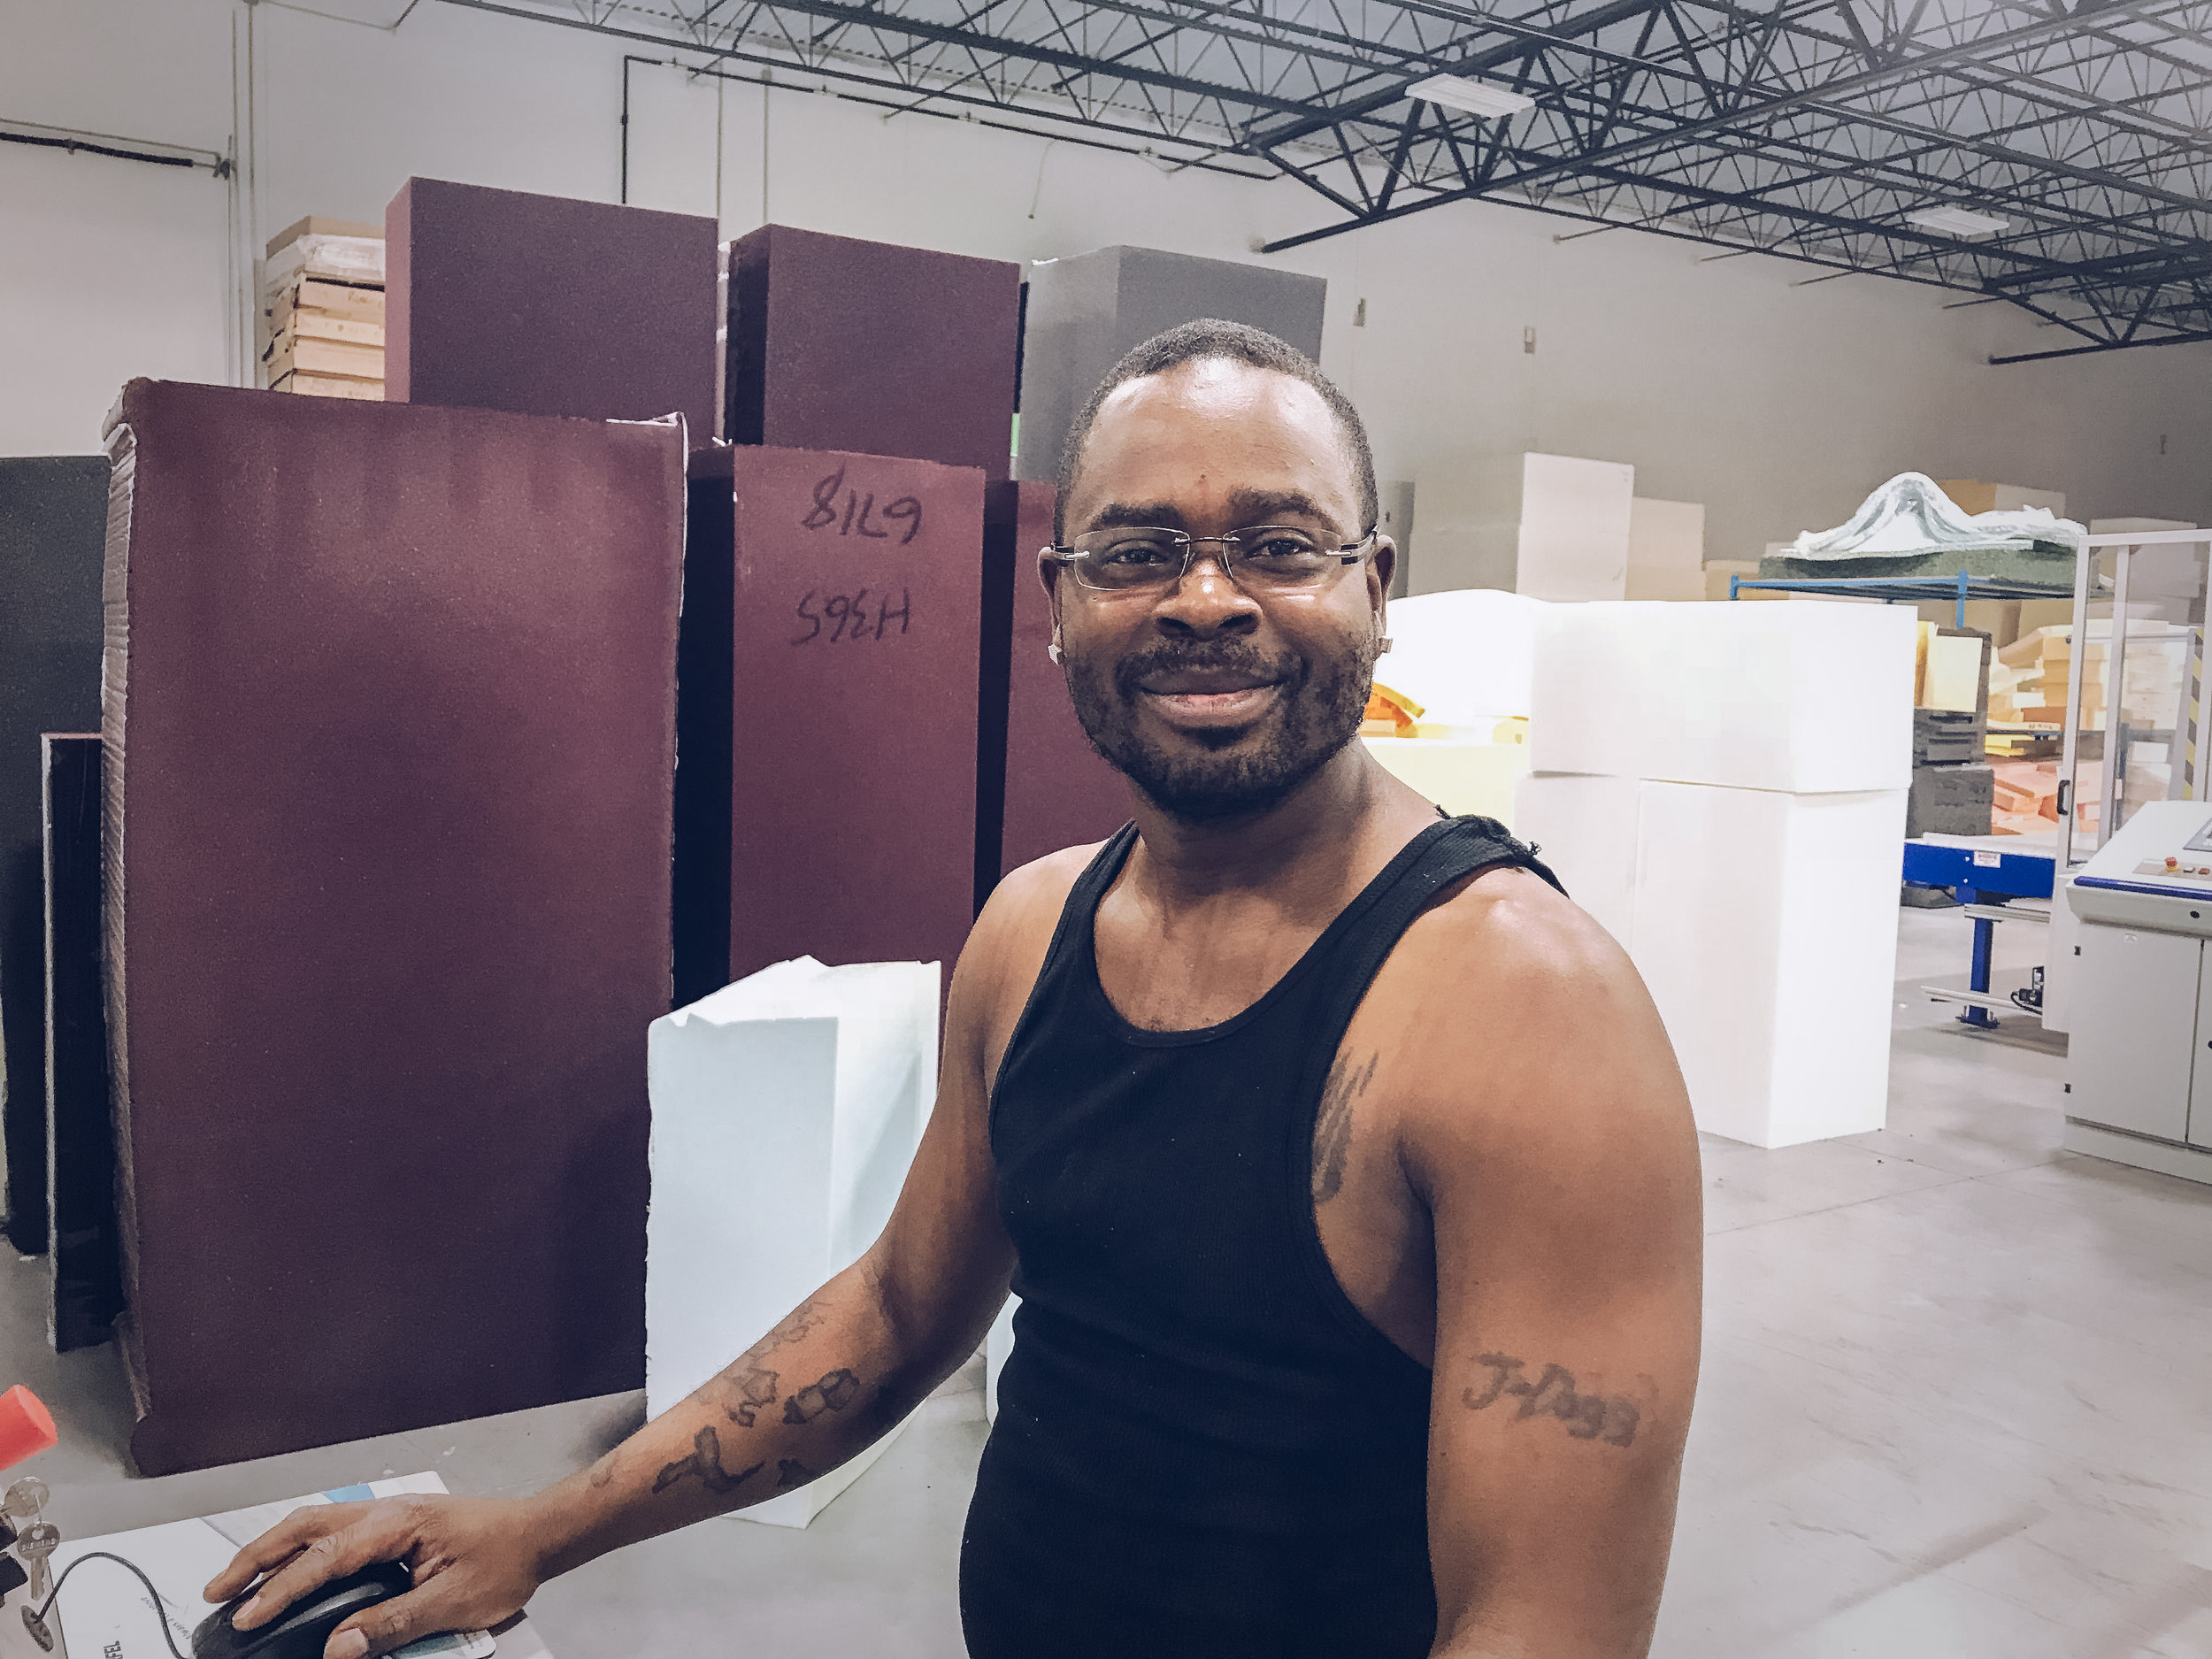 Meet Jamie Freeman, the Saw Lead and CNC Operator here at Comfort Option.